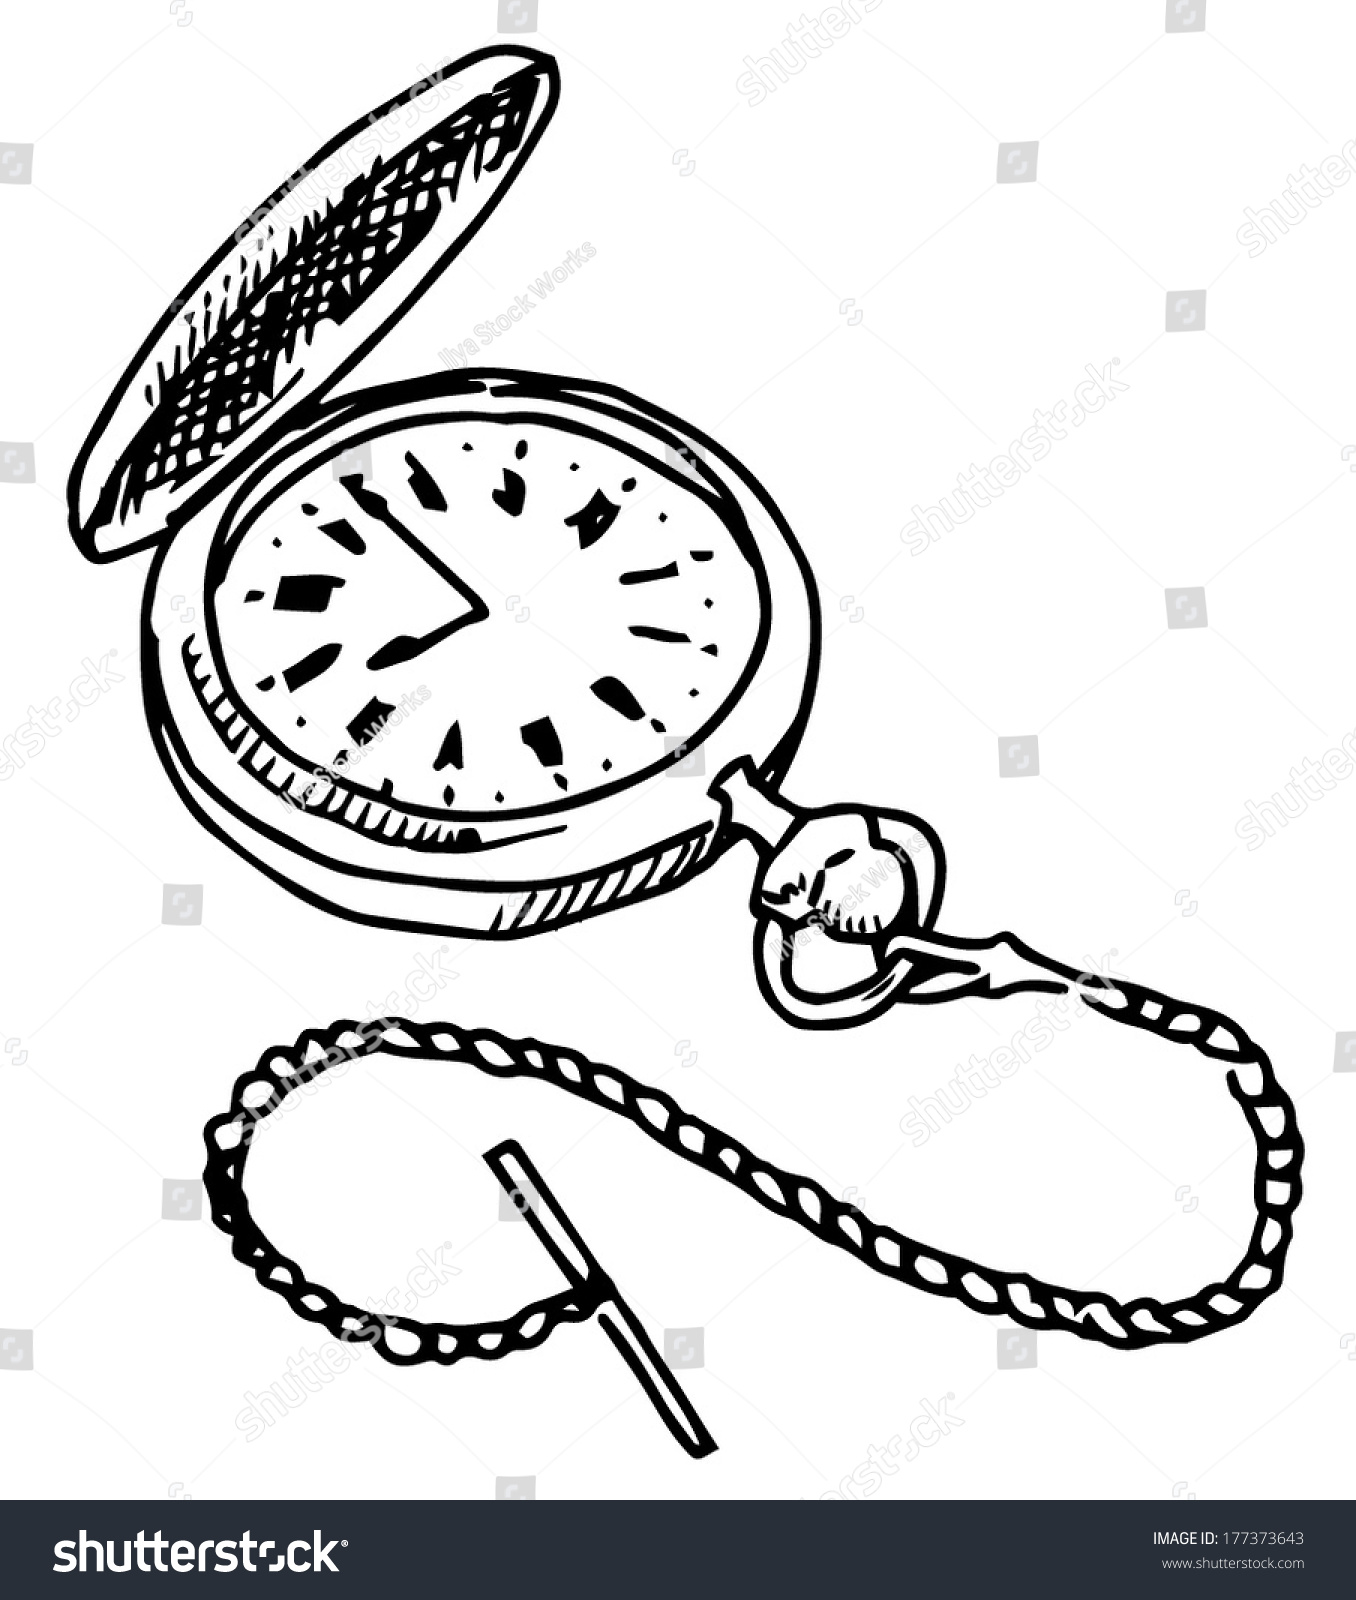 Pocket Watch Vector Drawing On White Stock Vector